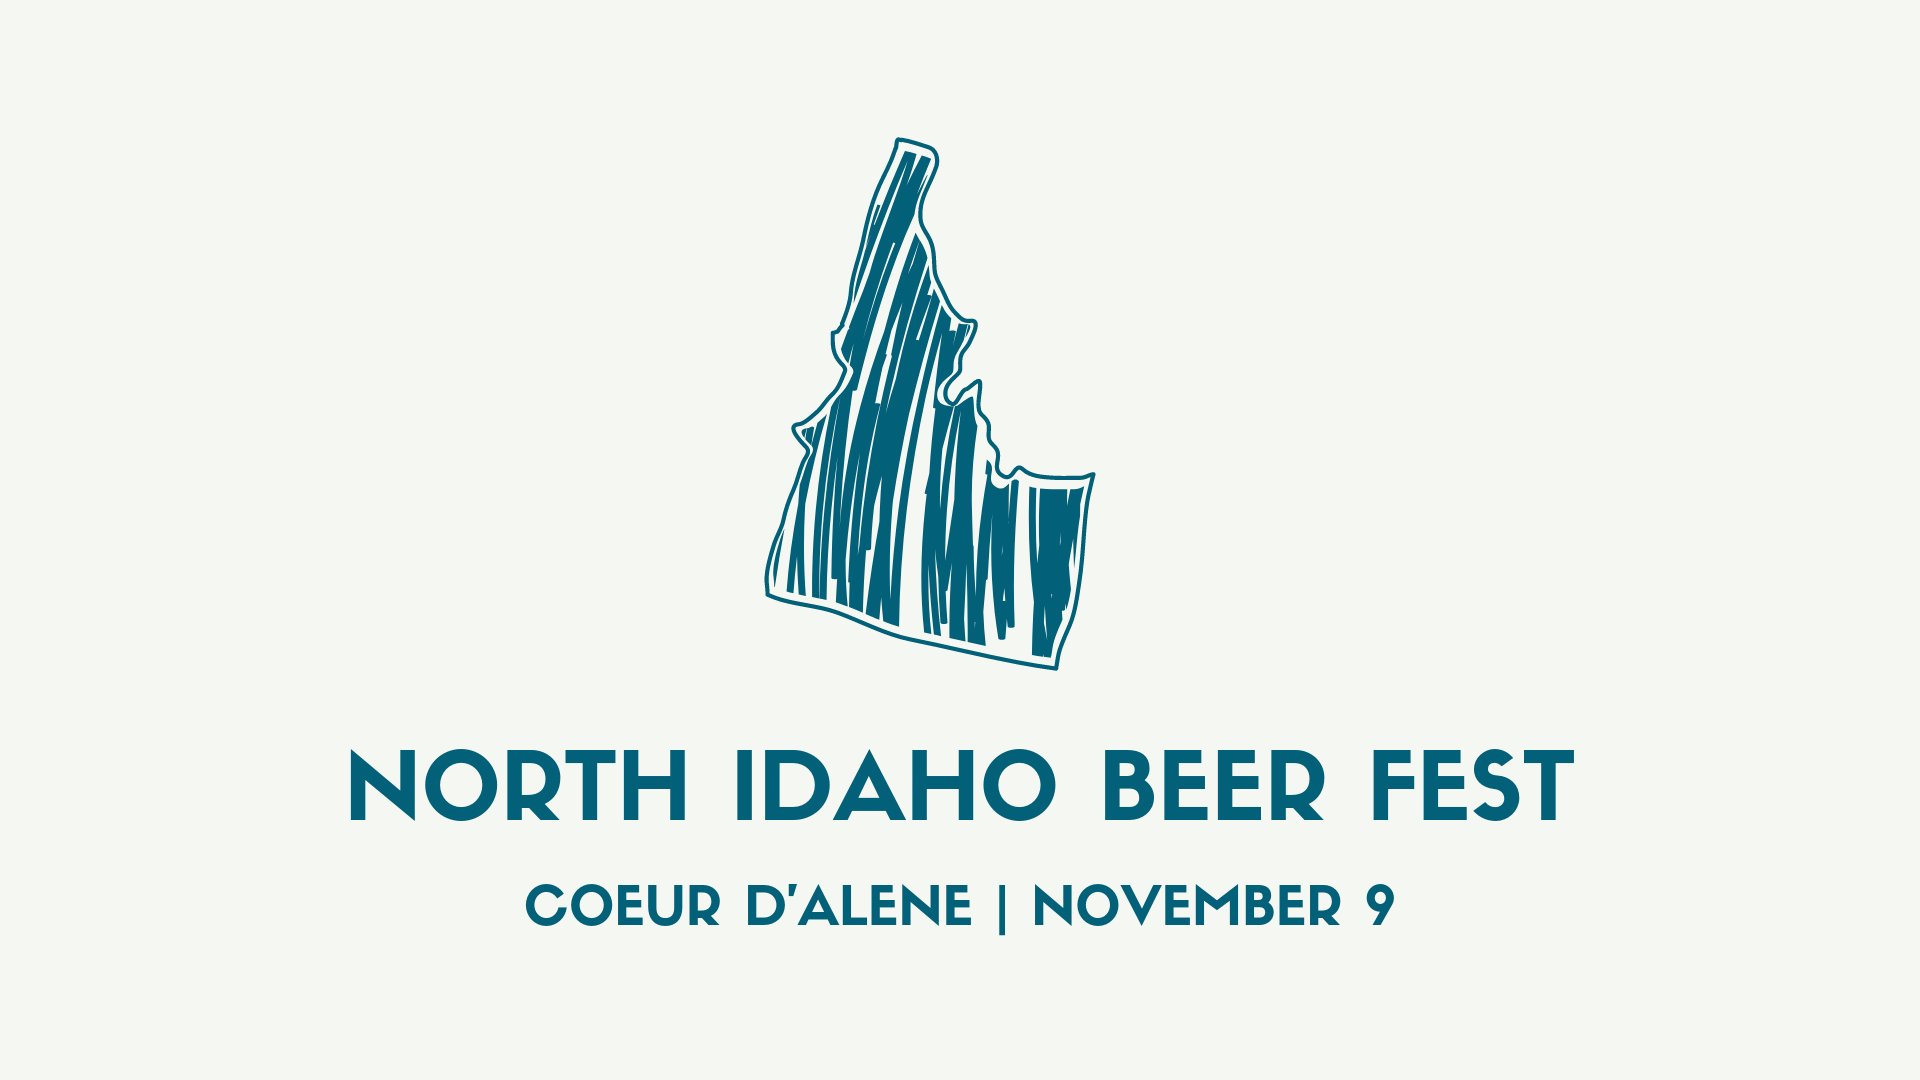 Tickets for North Idaho Beer Fest in Coeur d'Alene from BeerFests.com